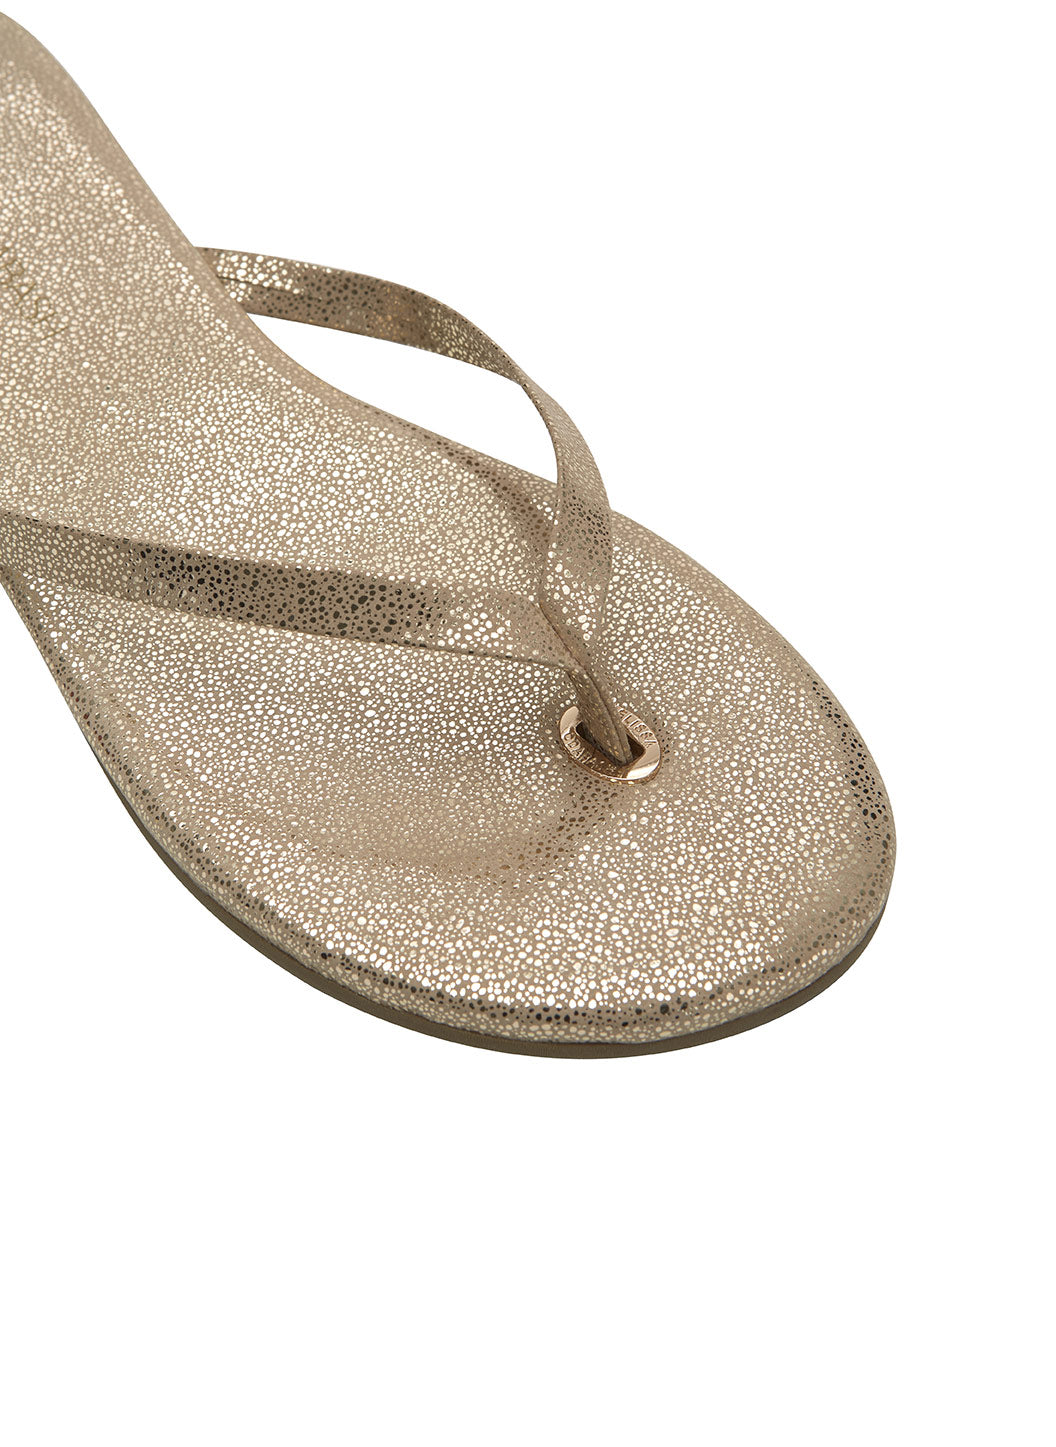 Leather Flip Flops Gold Sparkle - Melissa Odabash Leather Flip Flops